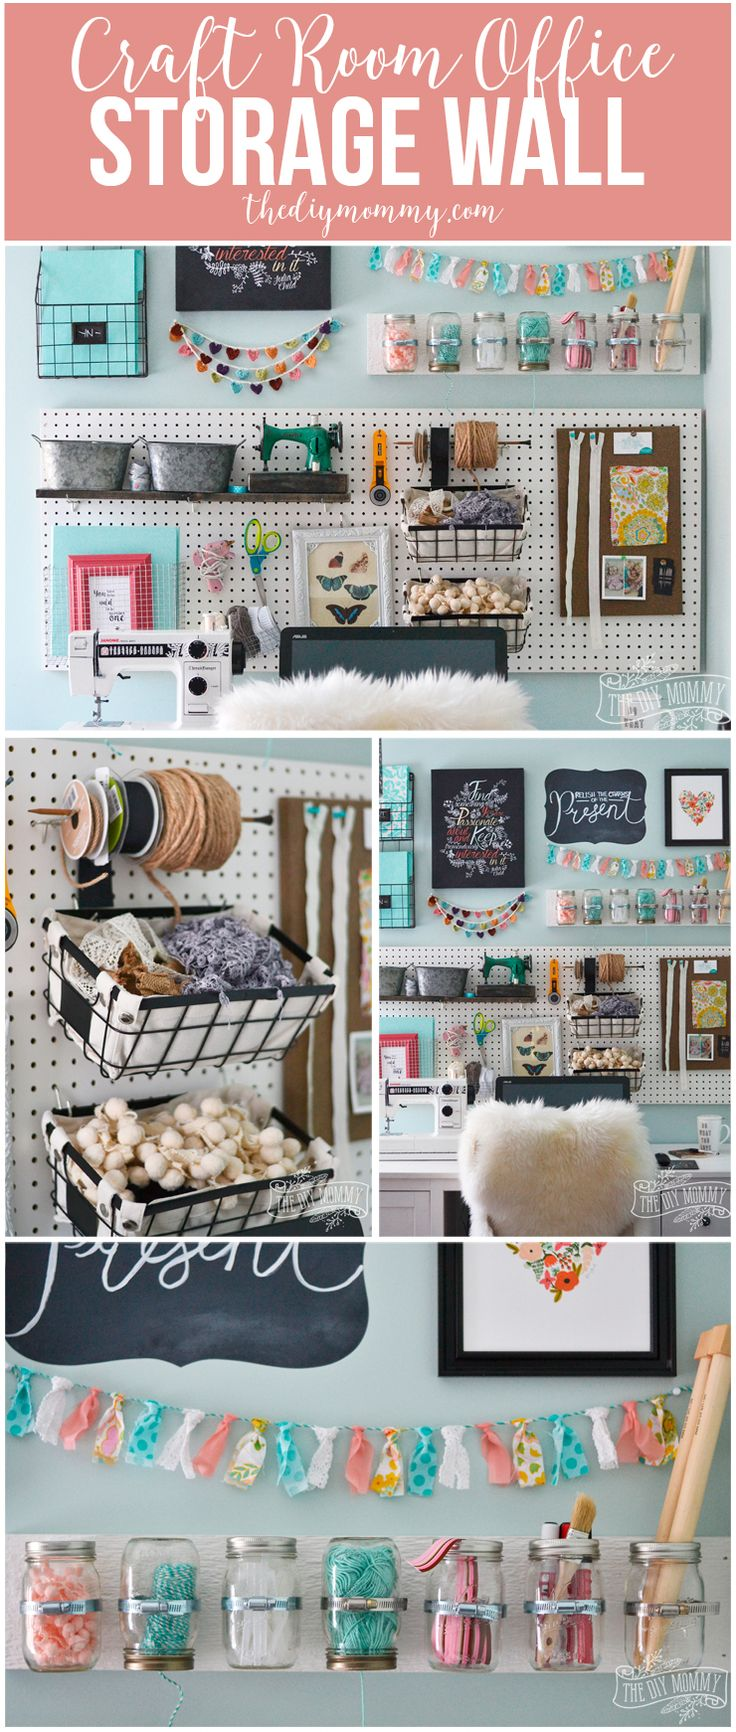 a beautiful colorful craft room office wall with pegboard for storage baskets charming office craft home wall storage